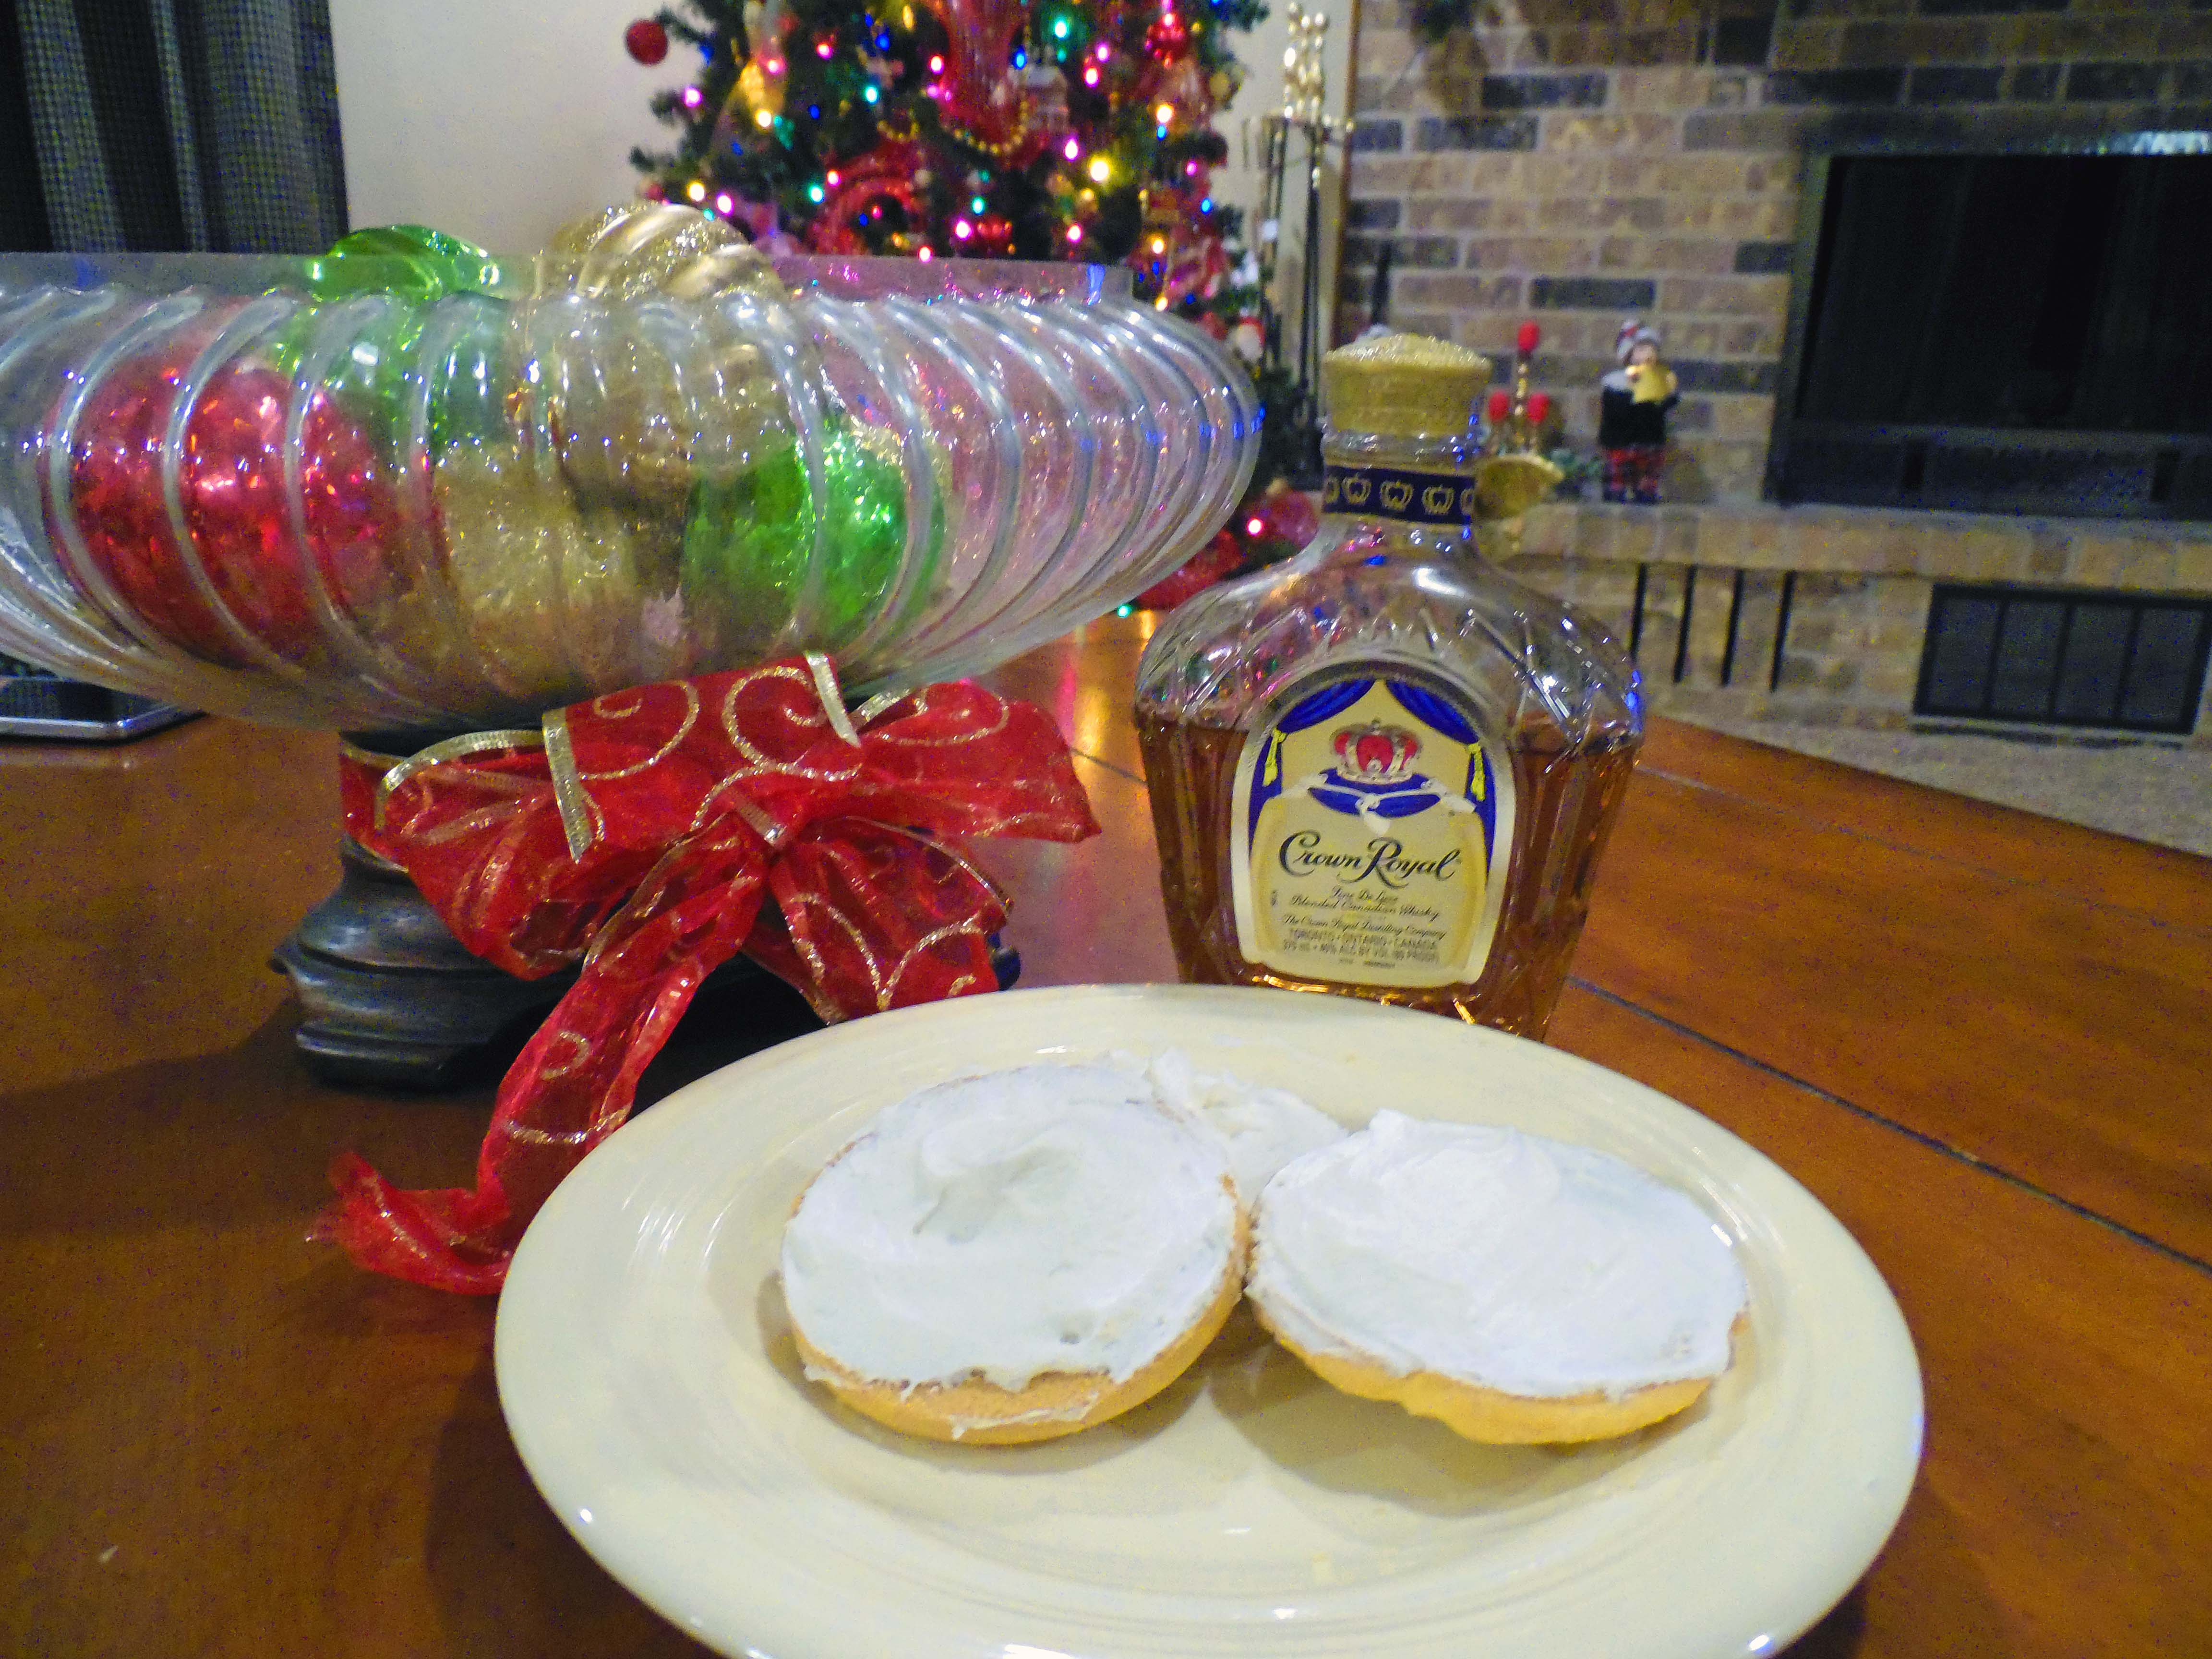 The spice up your life crown royal cookie recipe hedonist shedonist the spice up your life crown royal cookie recipe forumfinder Images